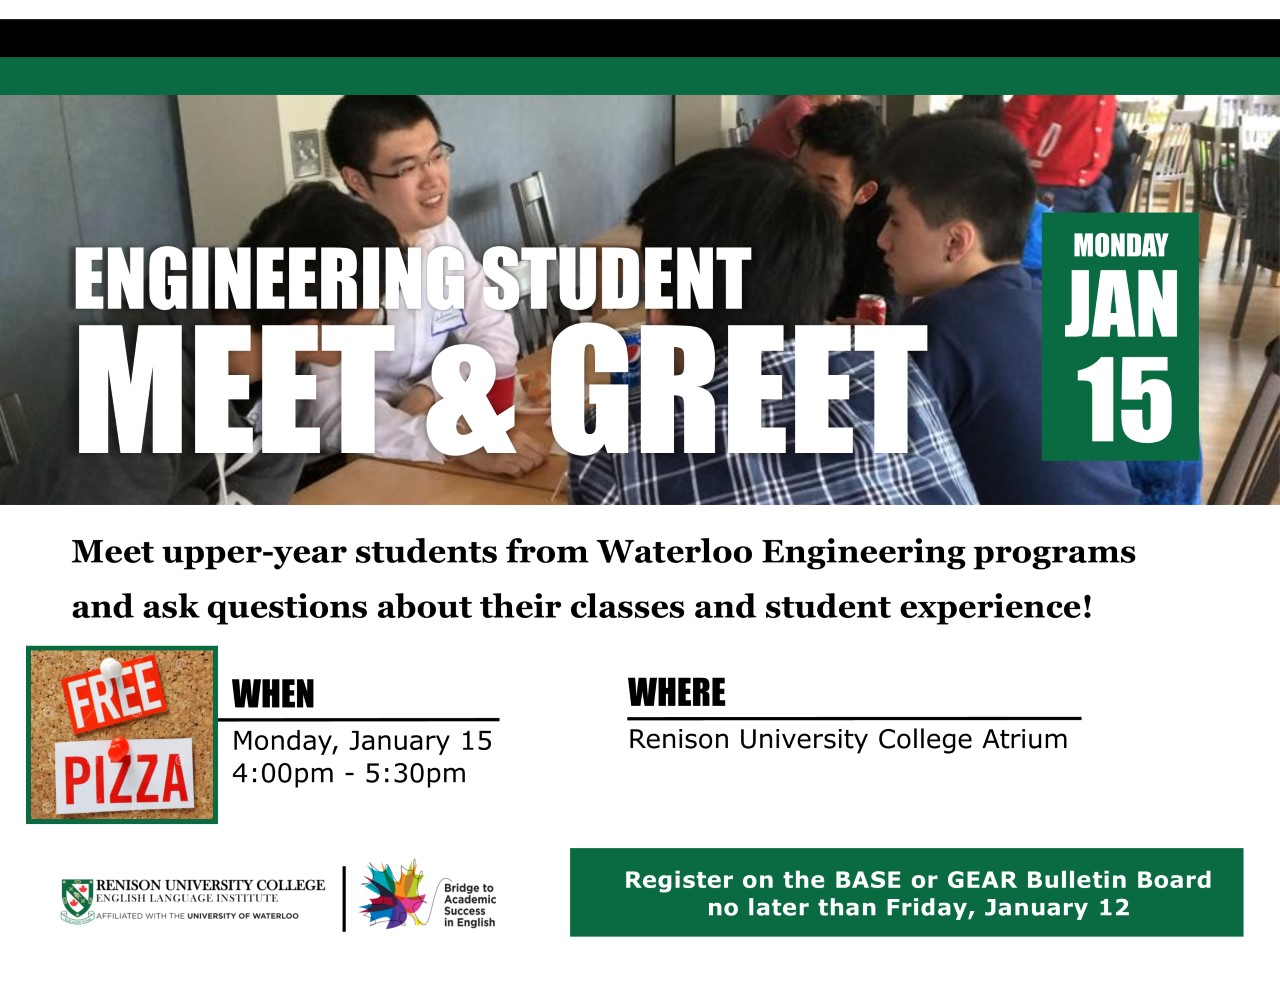 Engineering meet and greet